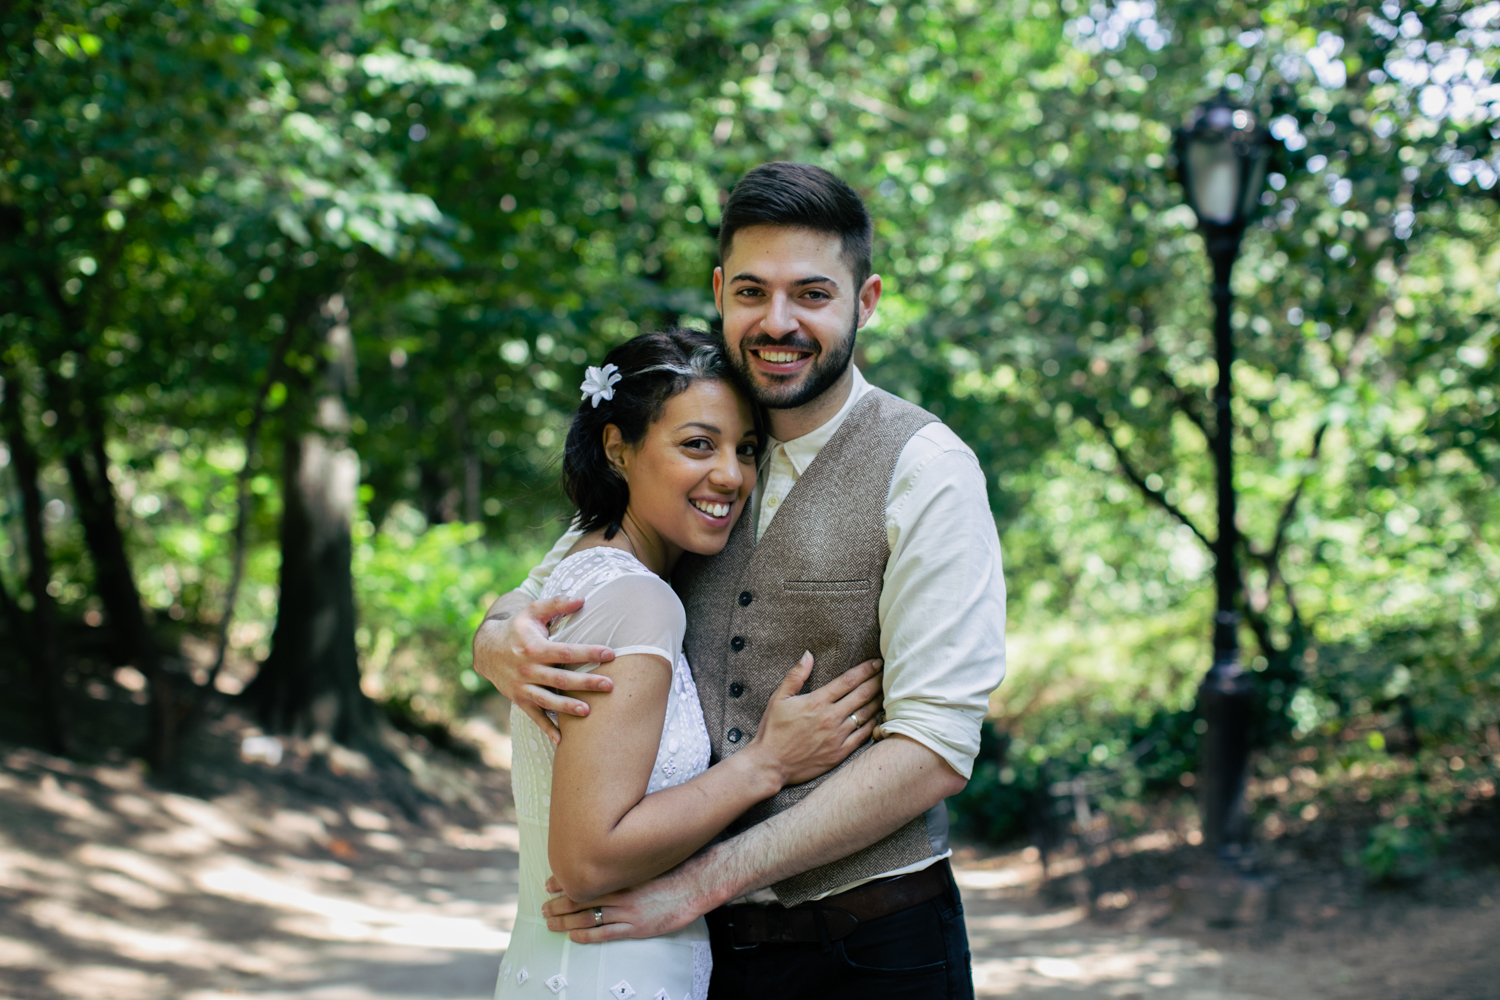 New York City newlyweds embrace in the park.